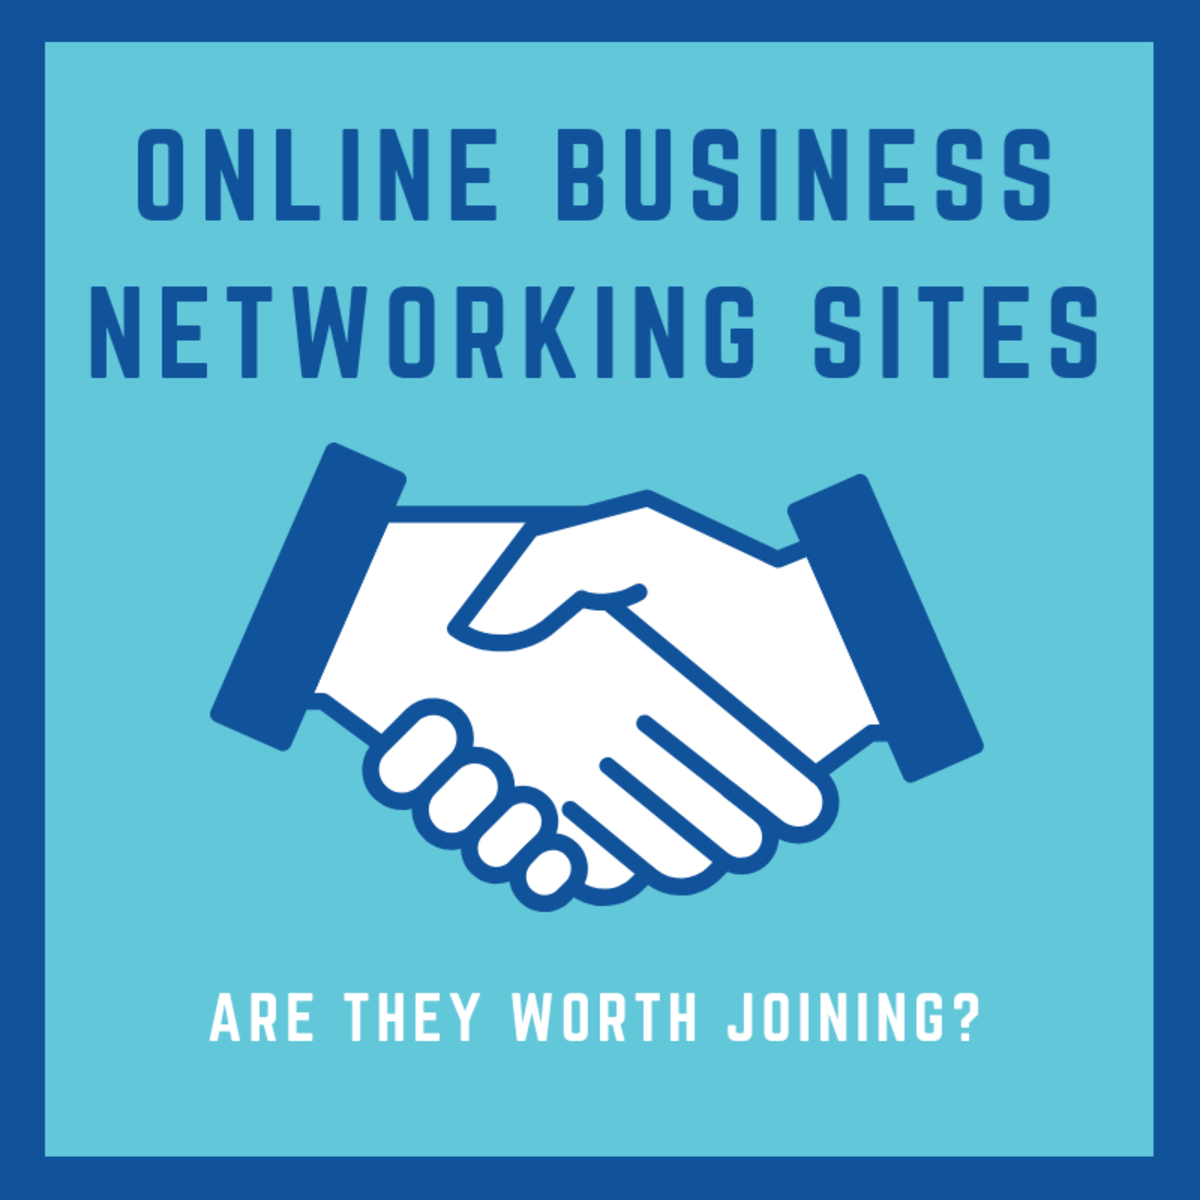 Weigh your options and find out if online business networking sites are right for you.